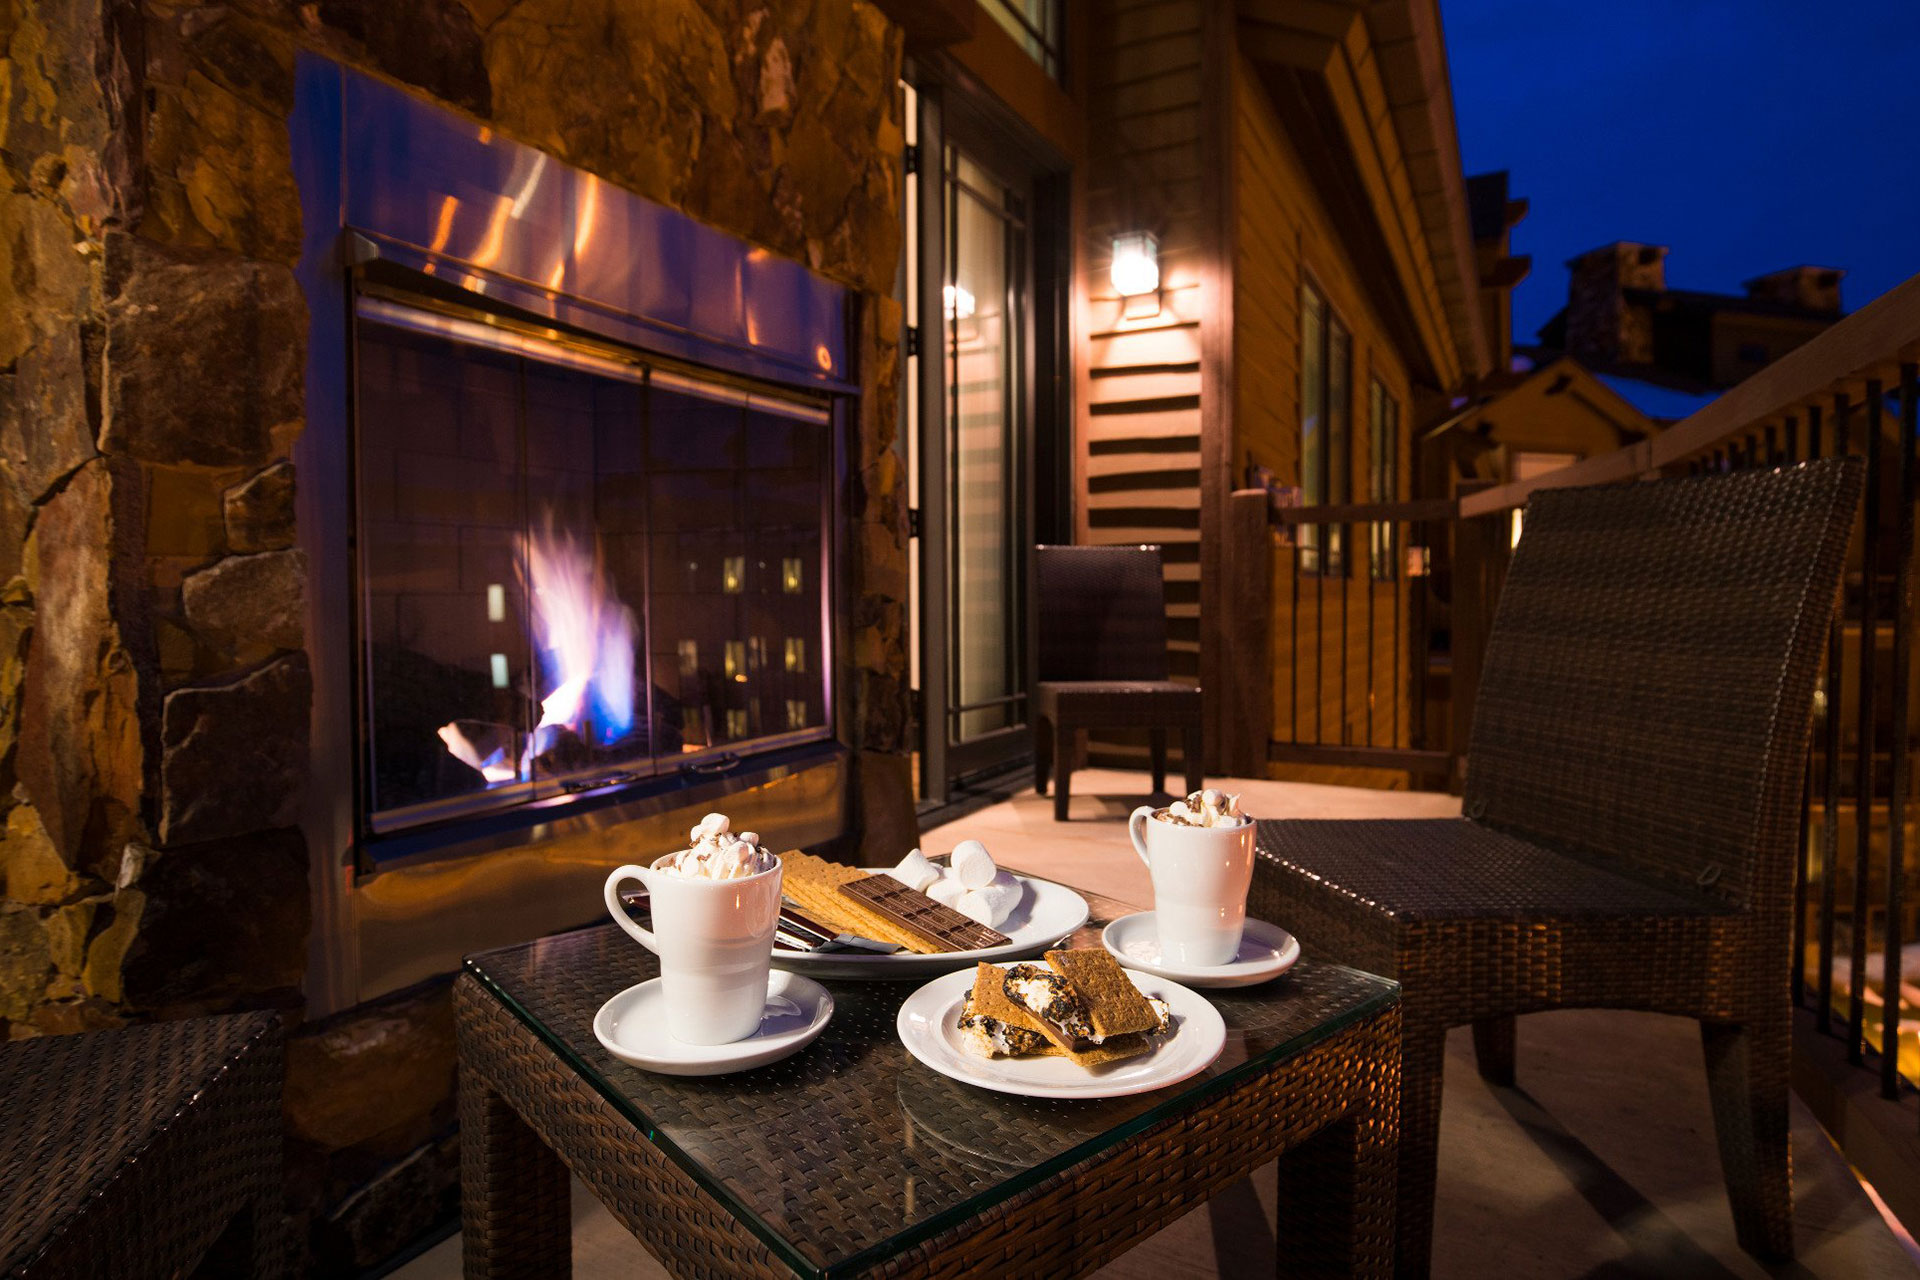 S'mores and Hot Cocoa at the Waldorf Astoria Park City; Courtesy of the Waldorf Astoria Park City